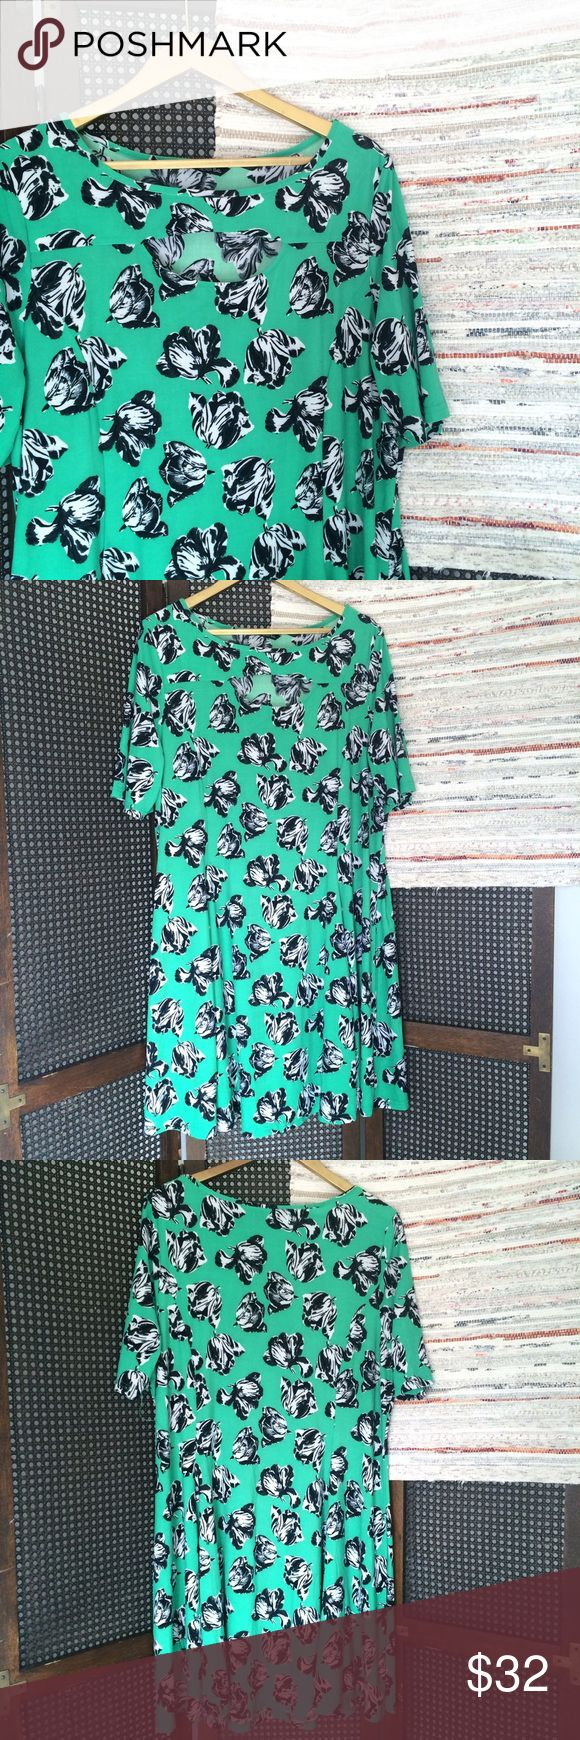 """Spring Time Floral Peep hole Dress Beautiful dress in a pretty green color with black and white flowers. Size 16. Great cut. Peephole in the front. Short sleeve. Slight a line/ princess cut. Moves really feminine. Bust measures 24.5"""" length 40"""".  •I don't swap/trade •I don't do holds  •I rarely model due to the fact that I don't fit all items.  •I price with shipping in mind  •I am open to reasonable negotiations  •Bundle for the best deals  ☮   ❤️   😊 Dresses"""